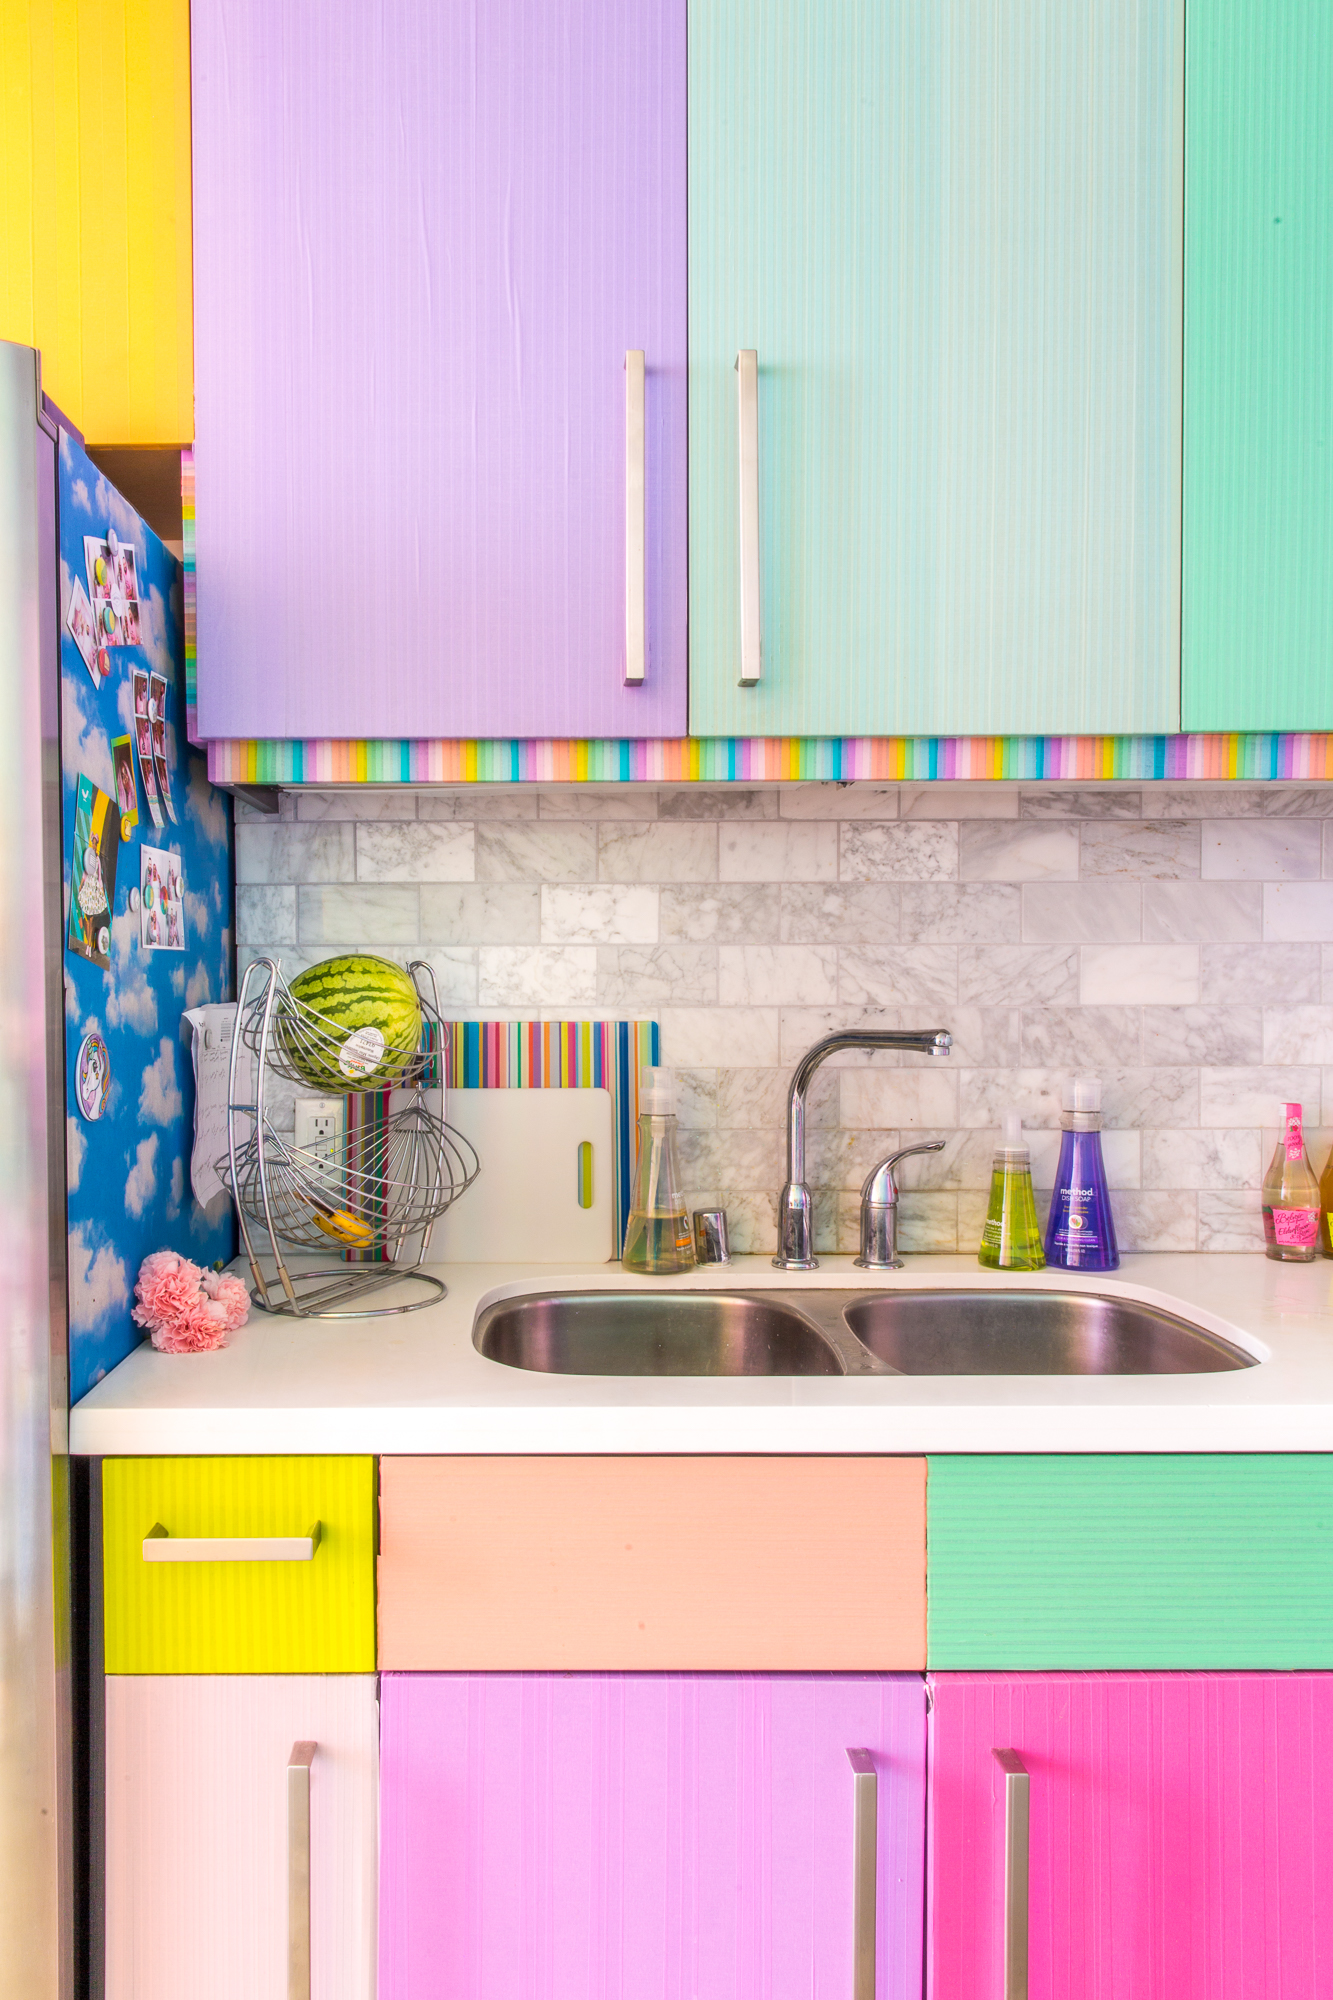 Diy Washi Tape Kitchen Cabinet Costs Apartment Therapy